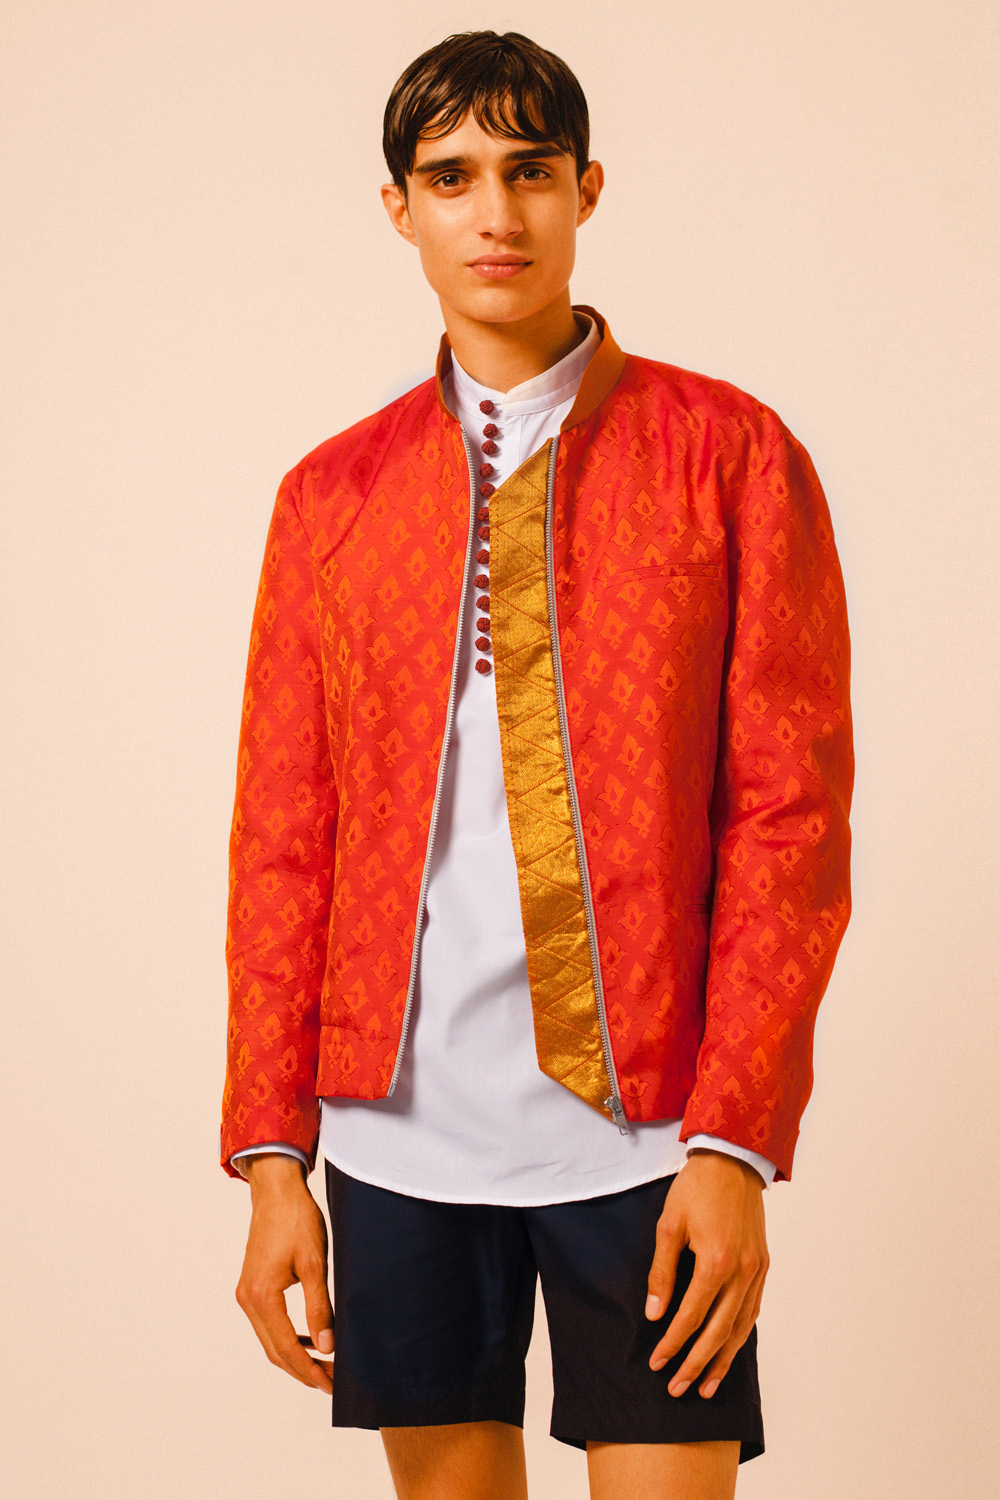 fatimayarie-advanilondon-menswear-red-jacket-shorts-bombay-img_2357